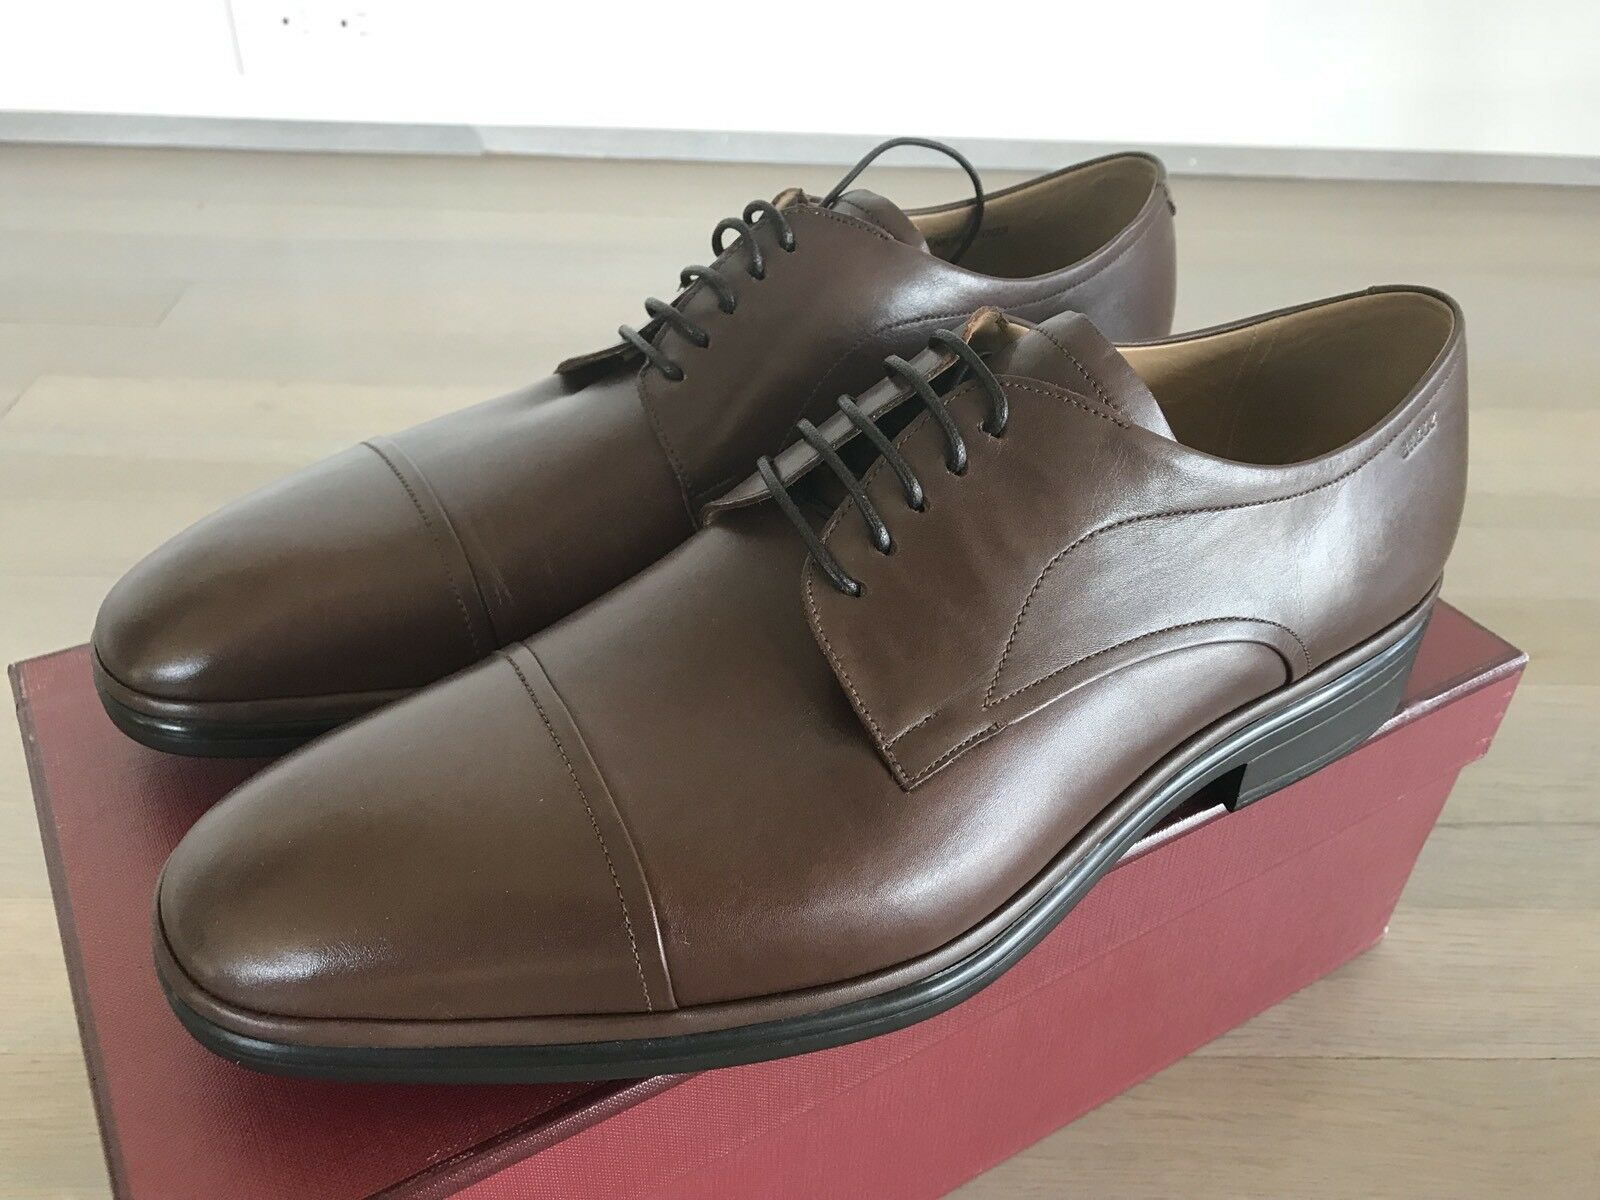 600  Bally Brown Nevil Leather Laces Up Size US 9 Made in Switzerland